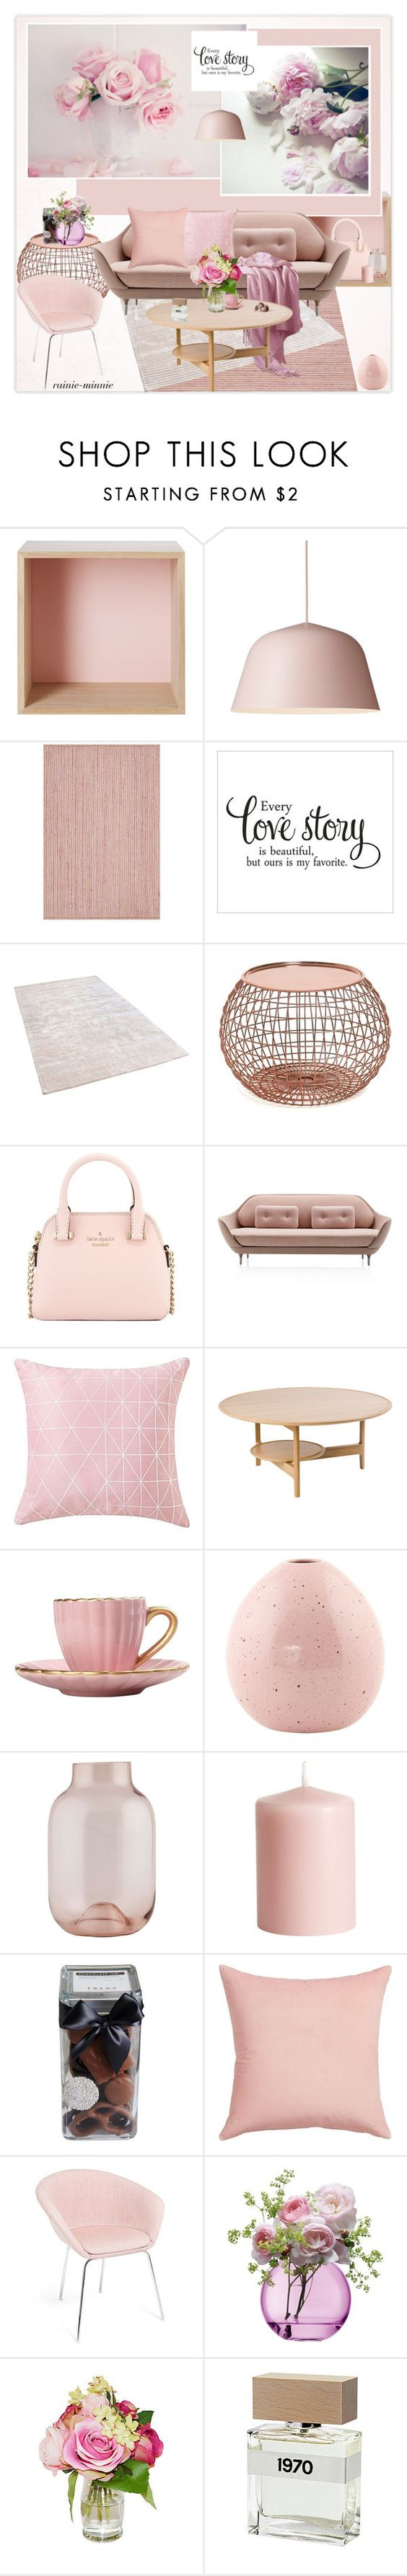 """Pink Roses for Valentine's day"" by rainie-minnie ❤ liked on Polyvore featuring interior, interiors, interior design, Zuhause, home decor, interior decorating, Muuto, Chandra Rugs, Kate Spade und Ercol"